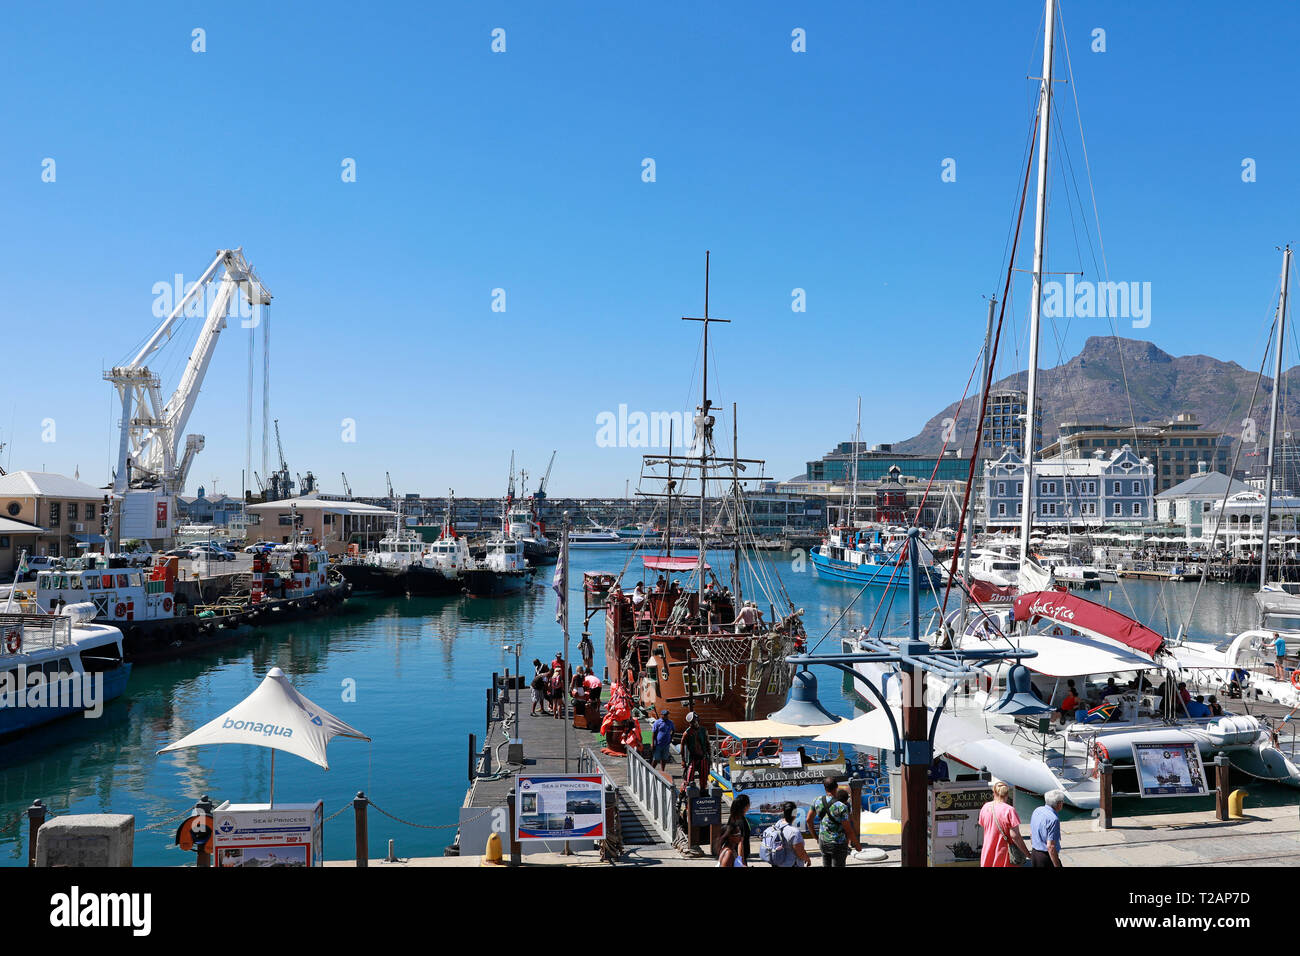 The Jolly Roger pirate boat in the V&A Waterfront, Cape Town, South Africa. - Stock Image